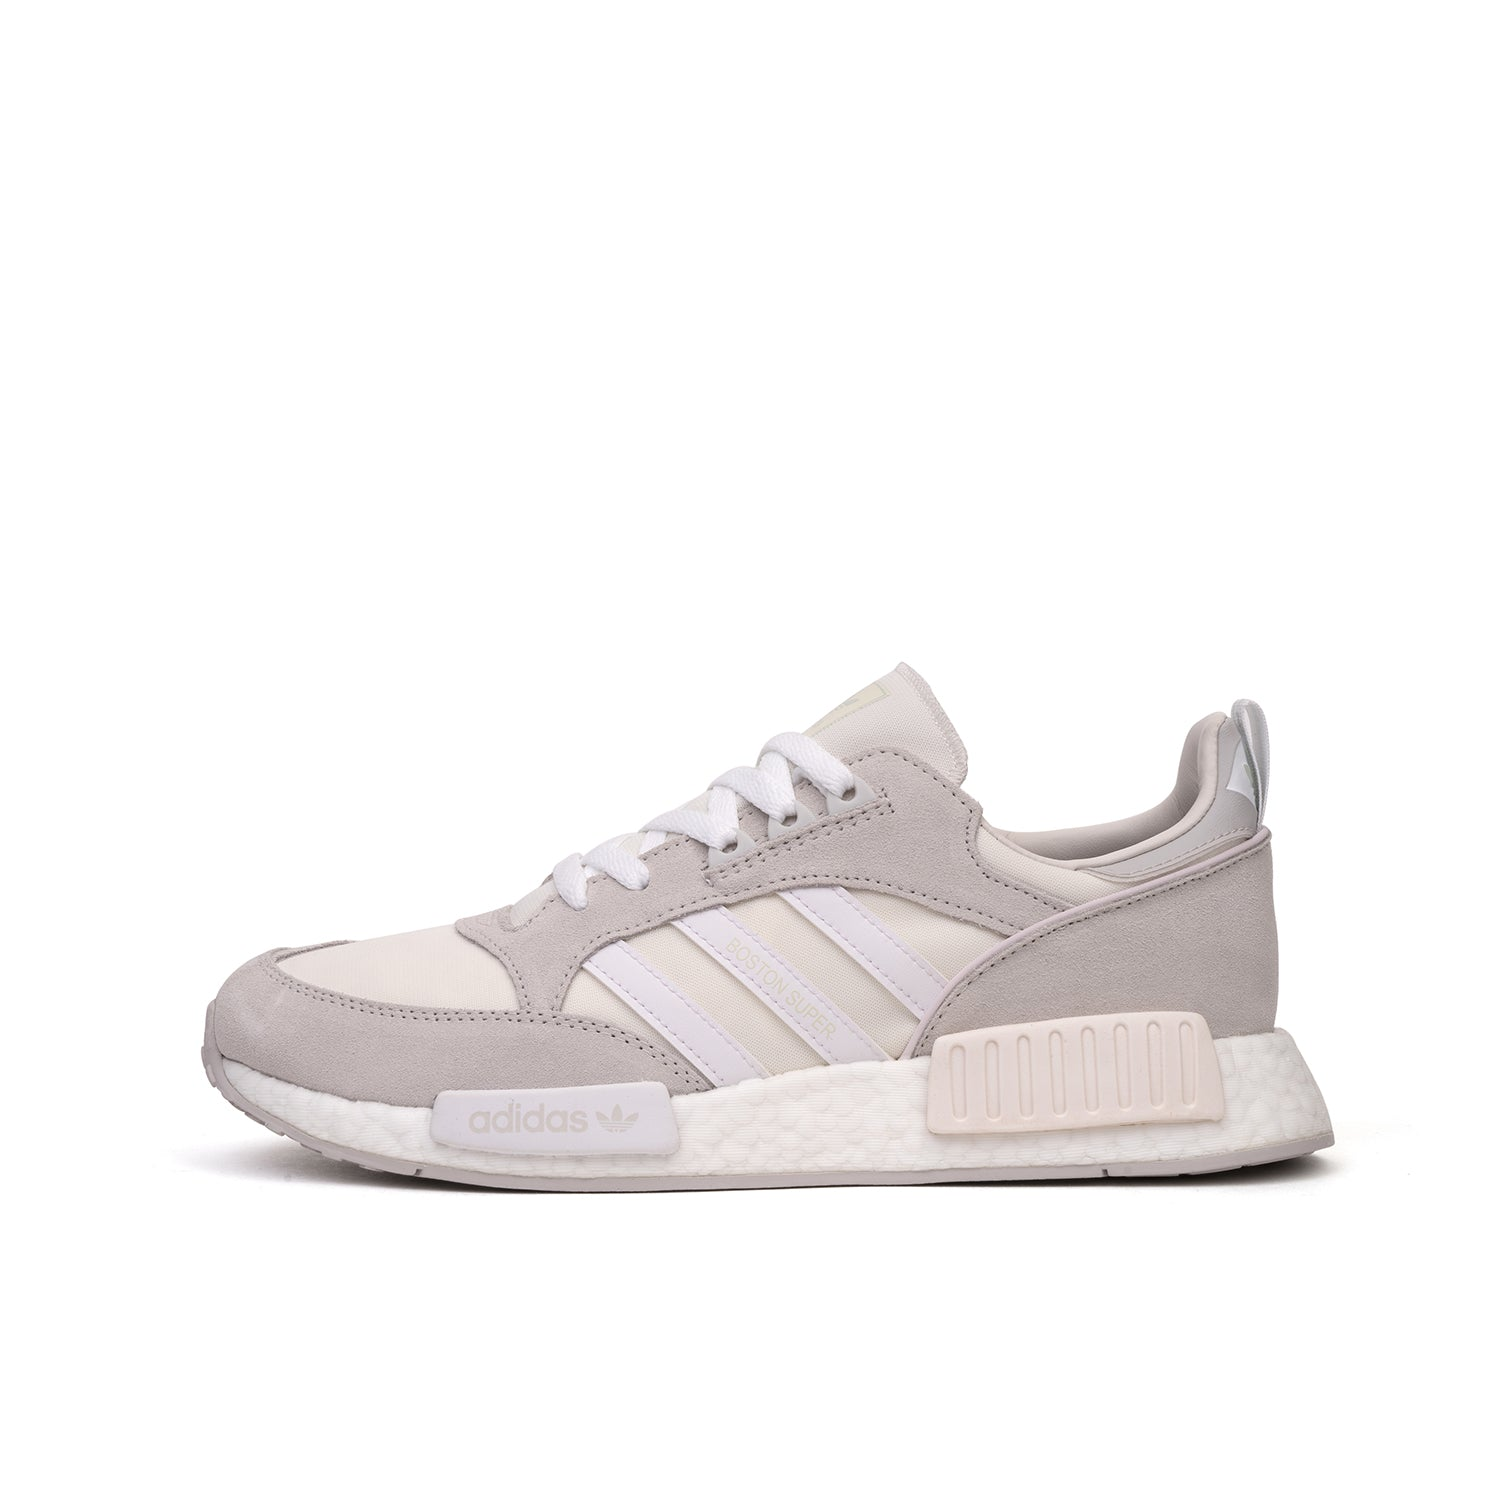 adidas Originals Boston Super x R1  NEVER MADE  Cloud White. Tap to expand bdd014fd7